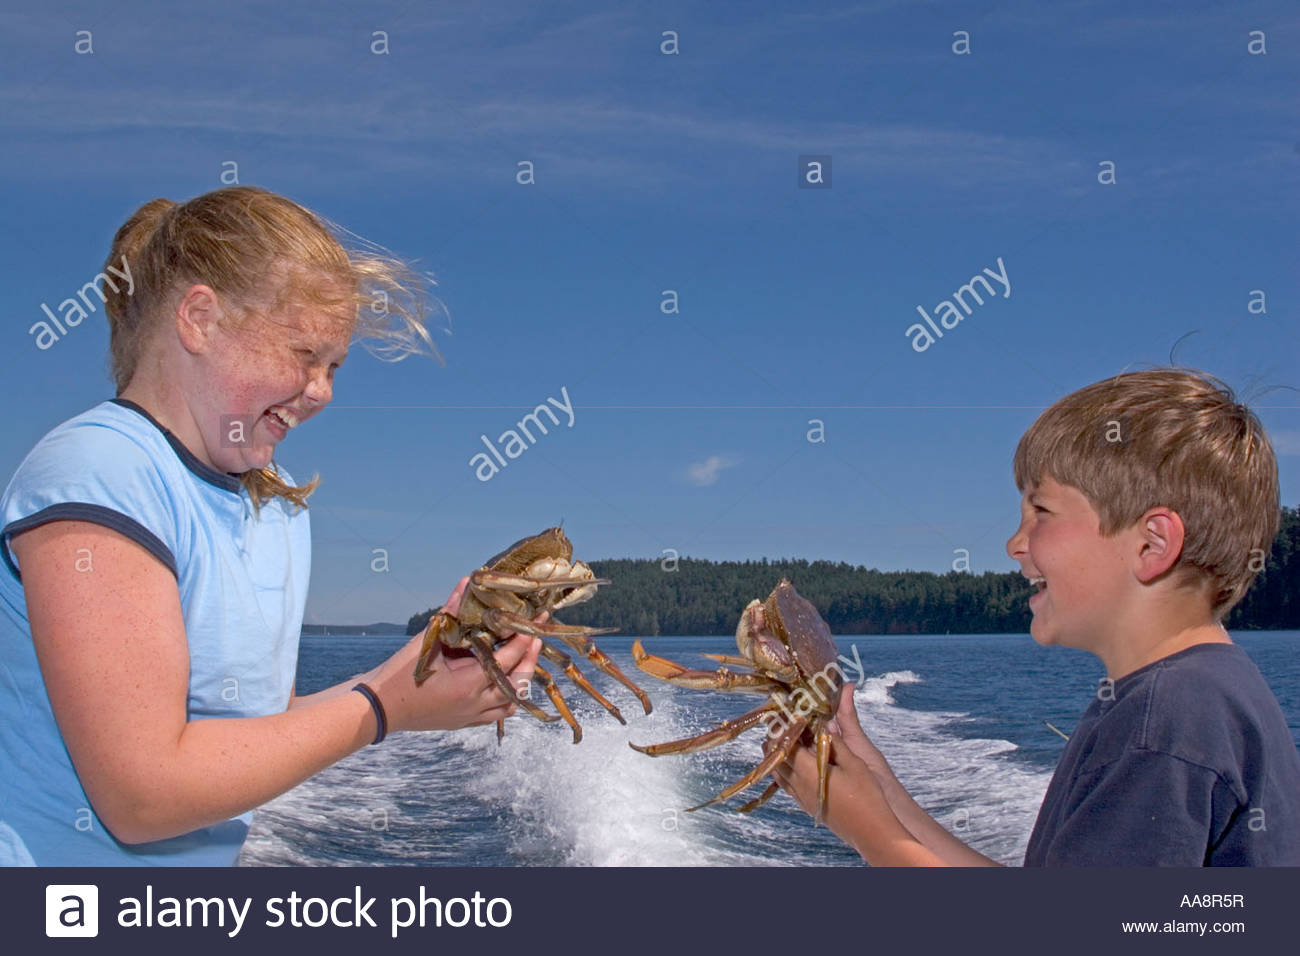 Children holding freshly caught crabs - Stock Image